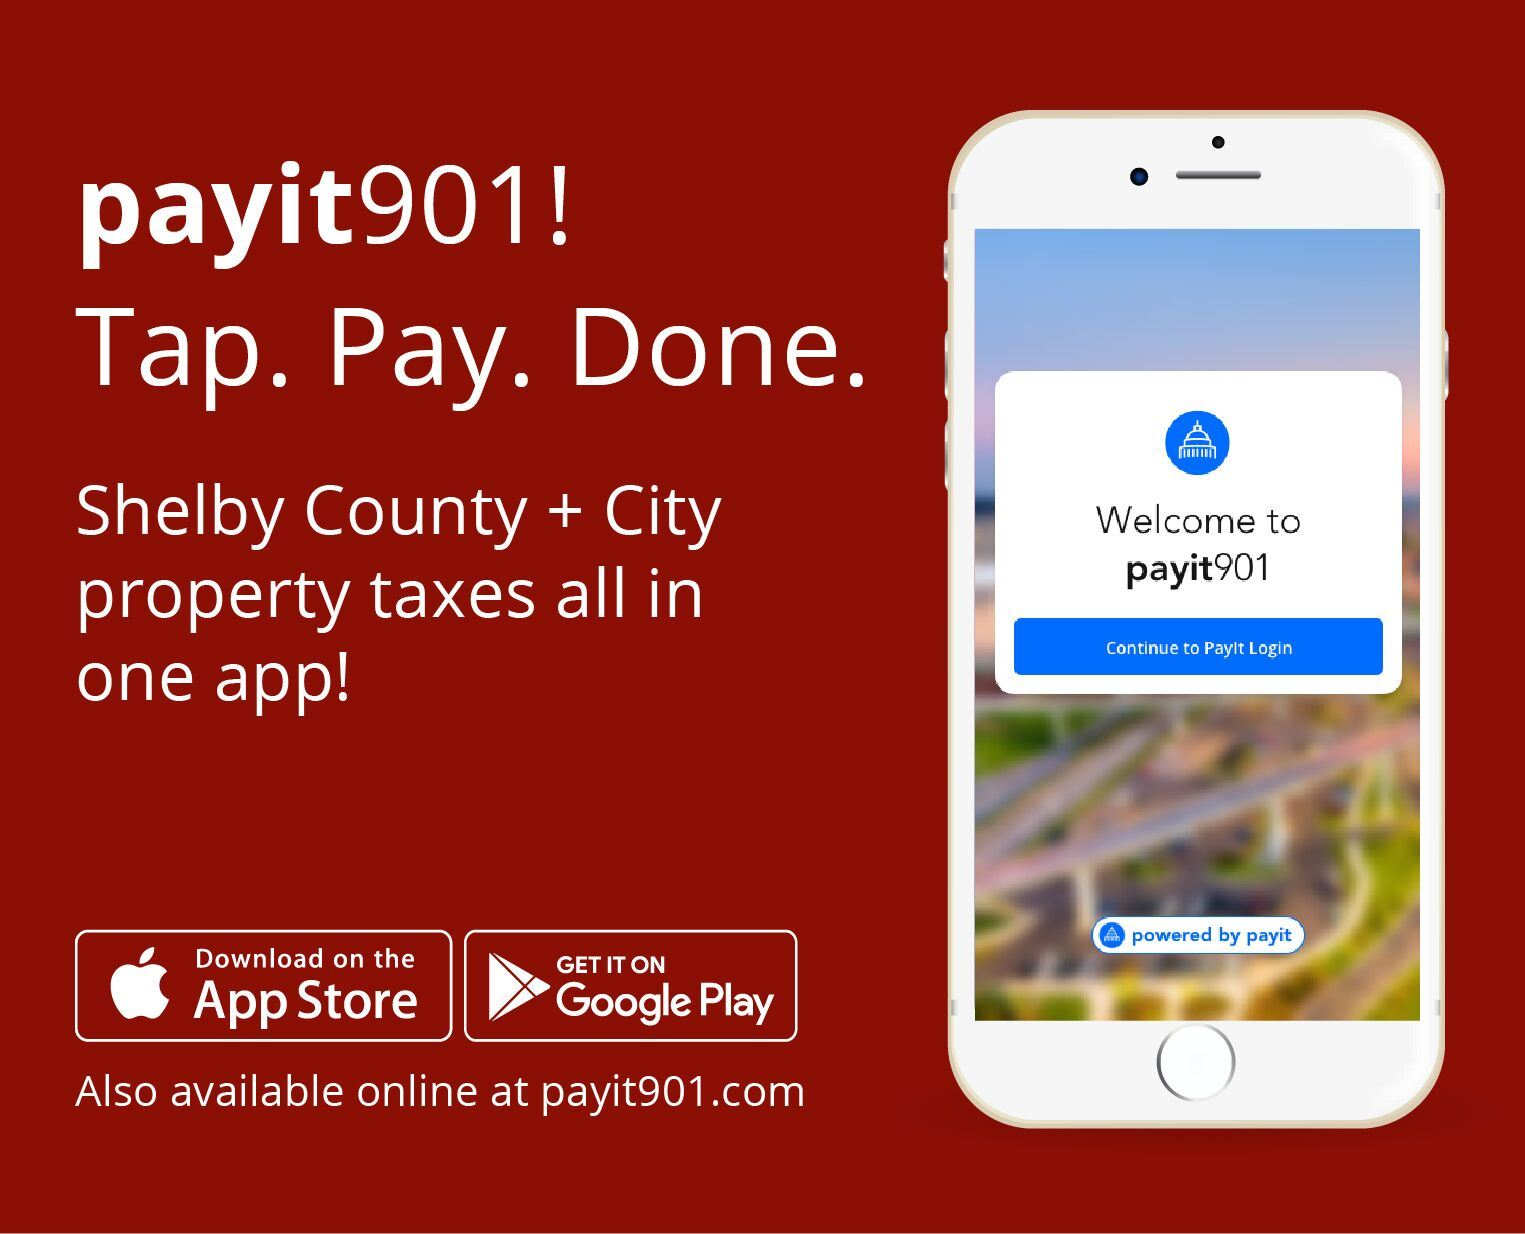 Payit901 - Tap. Pay. Done.